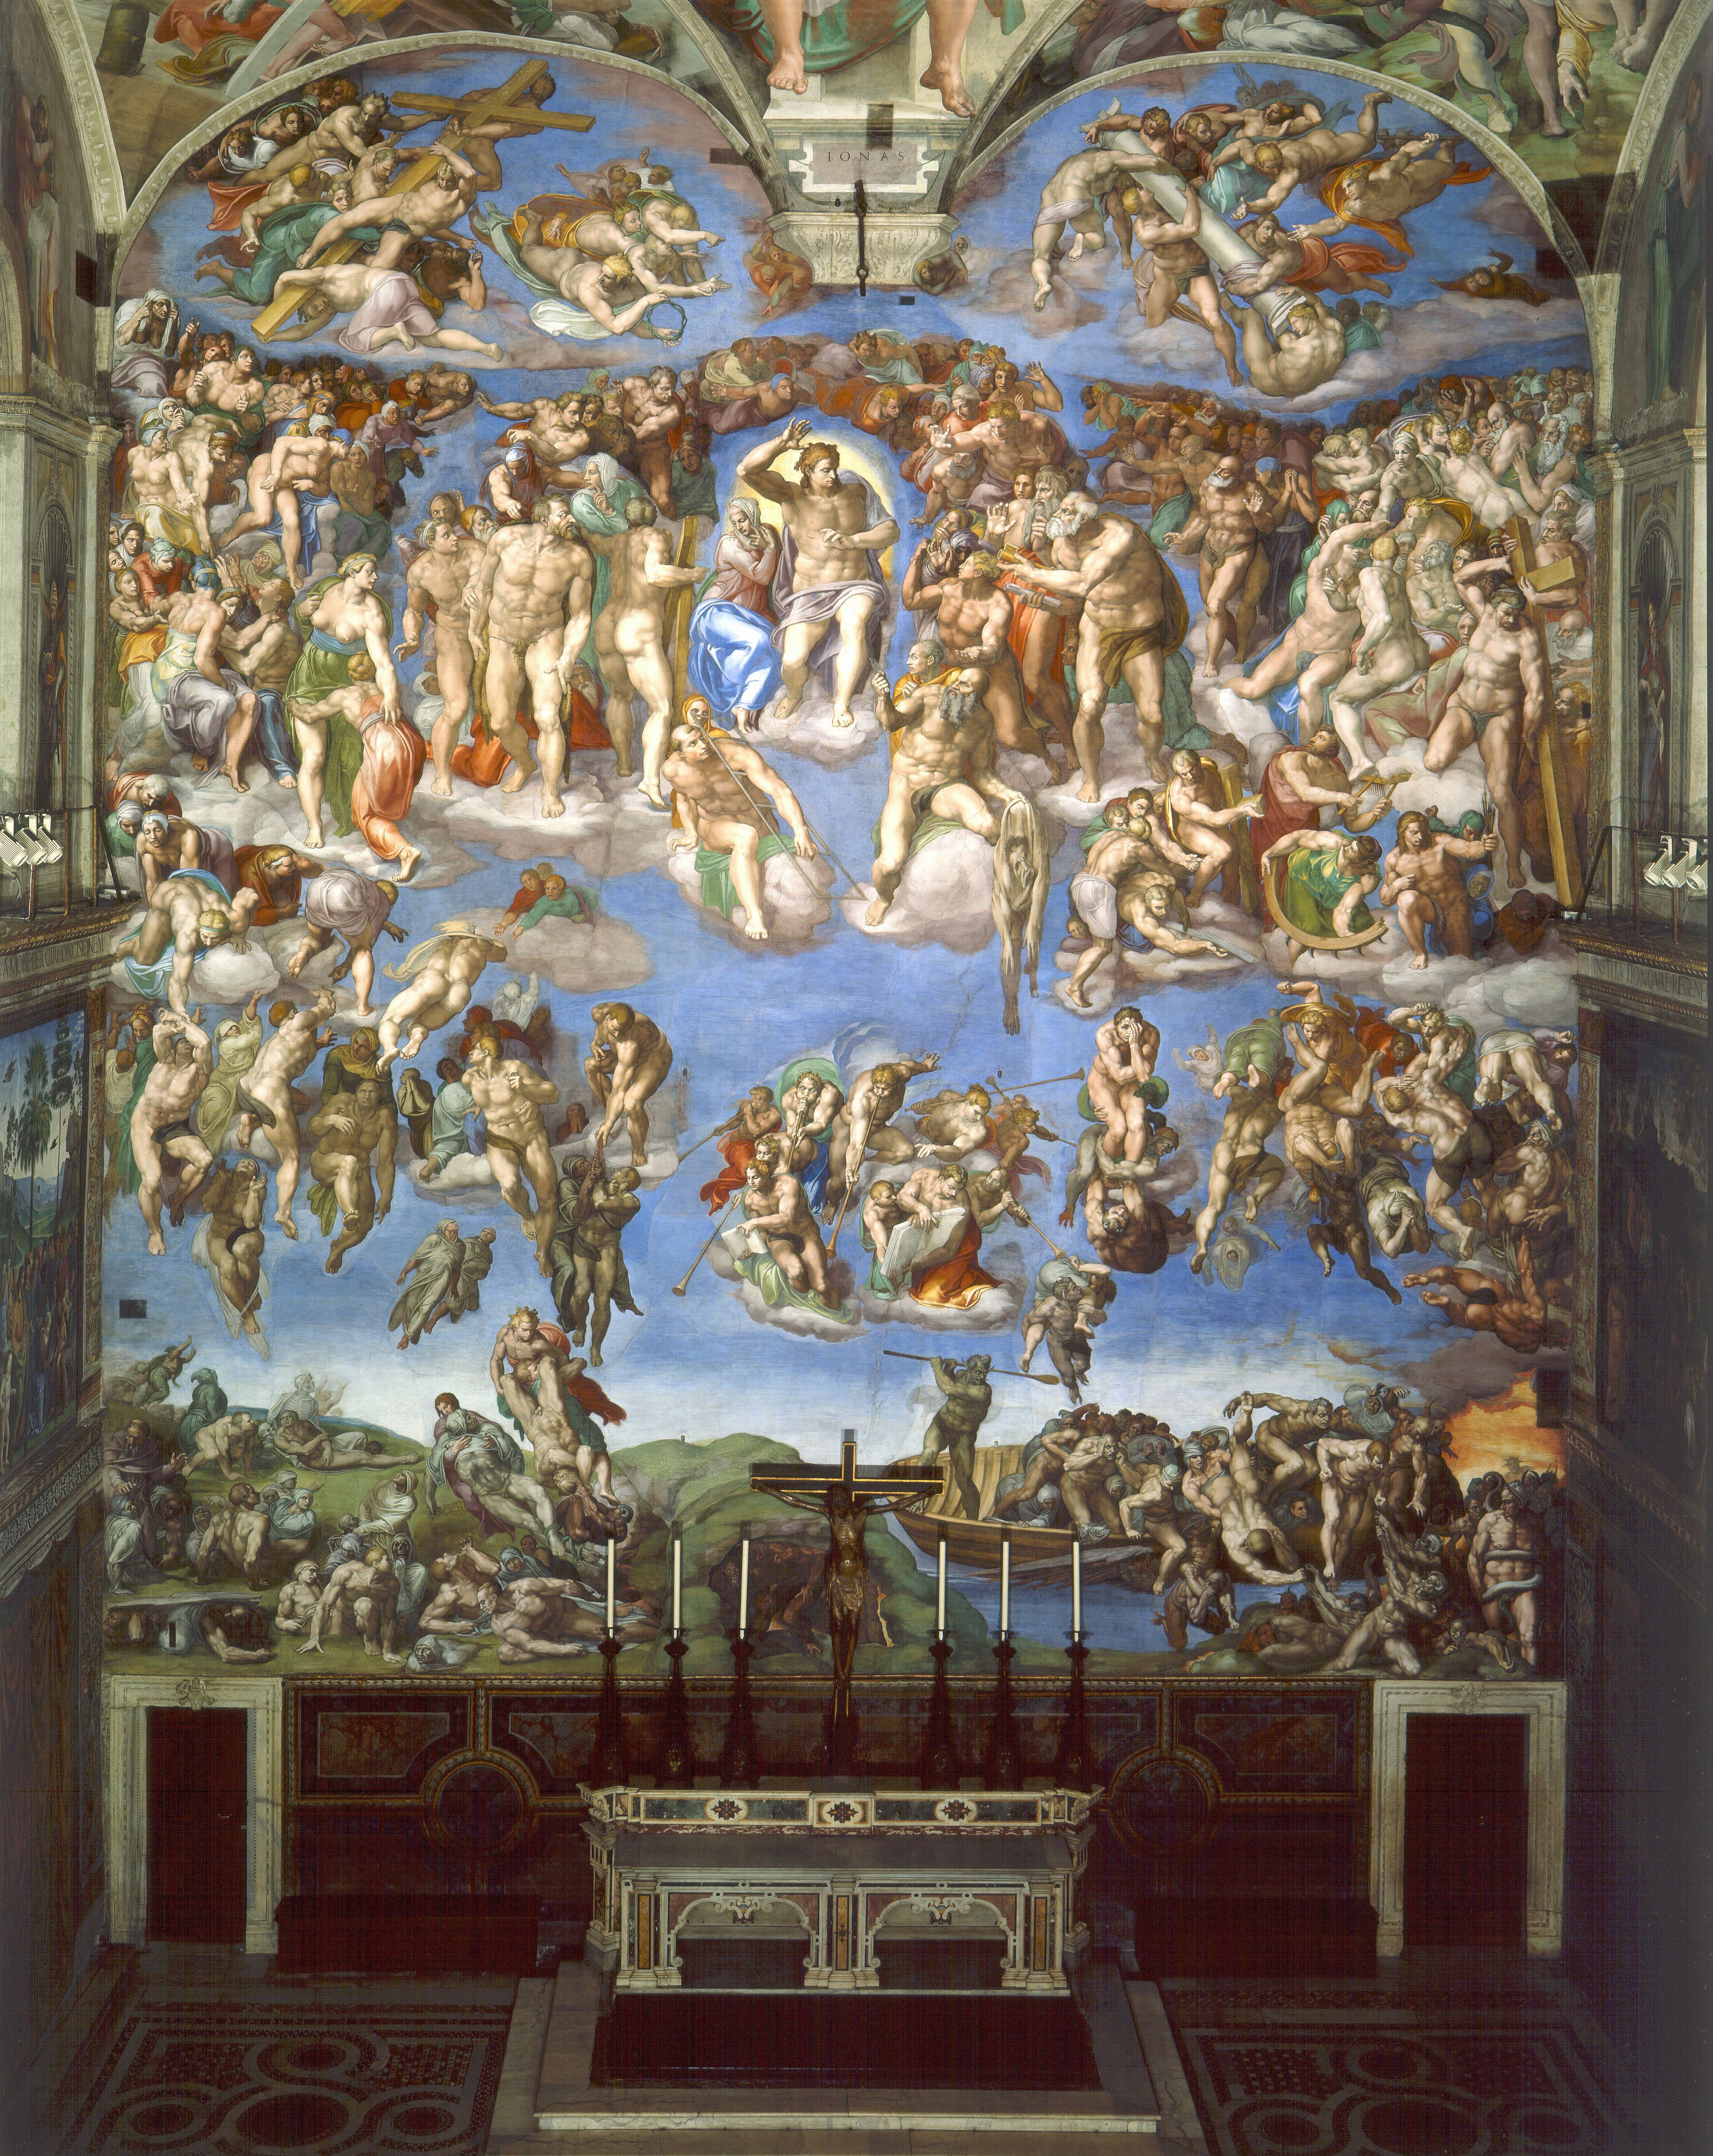 The Last Judgement Pinturas De Michelangelo Arte Renascentista